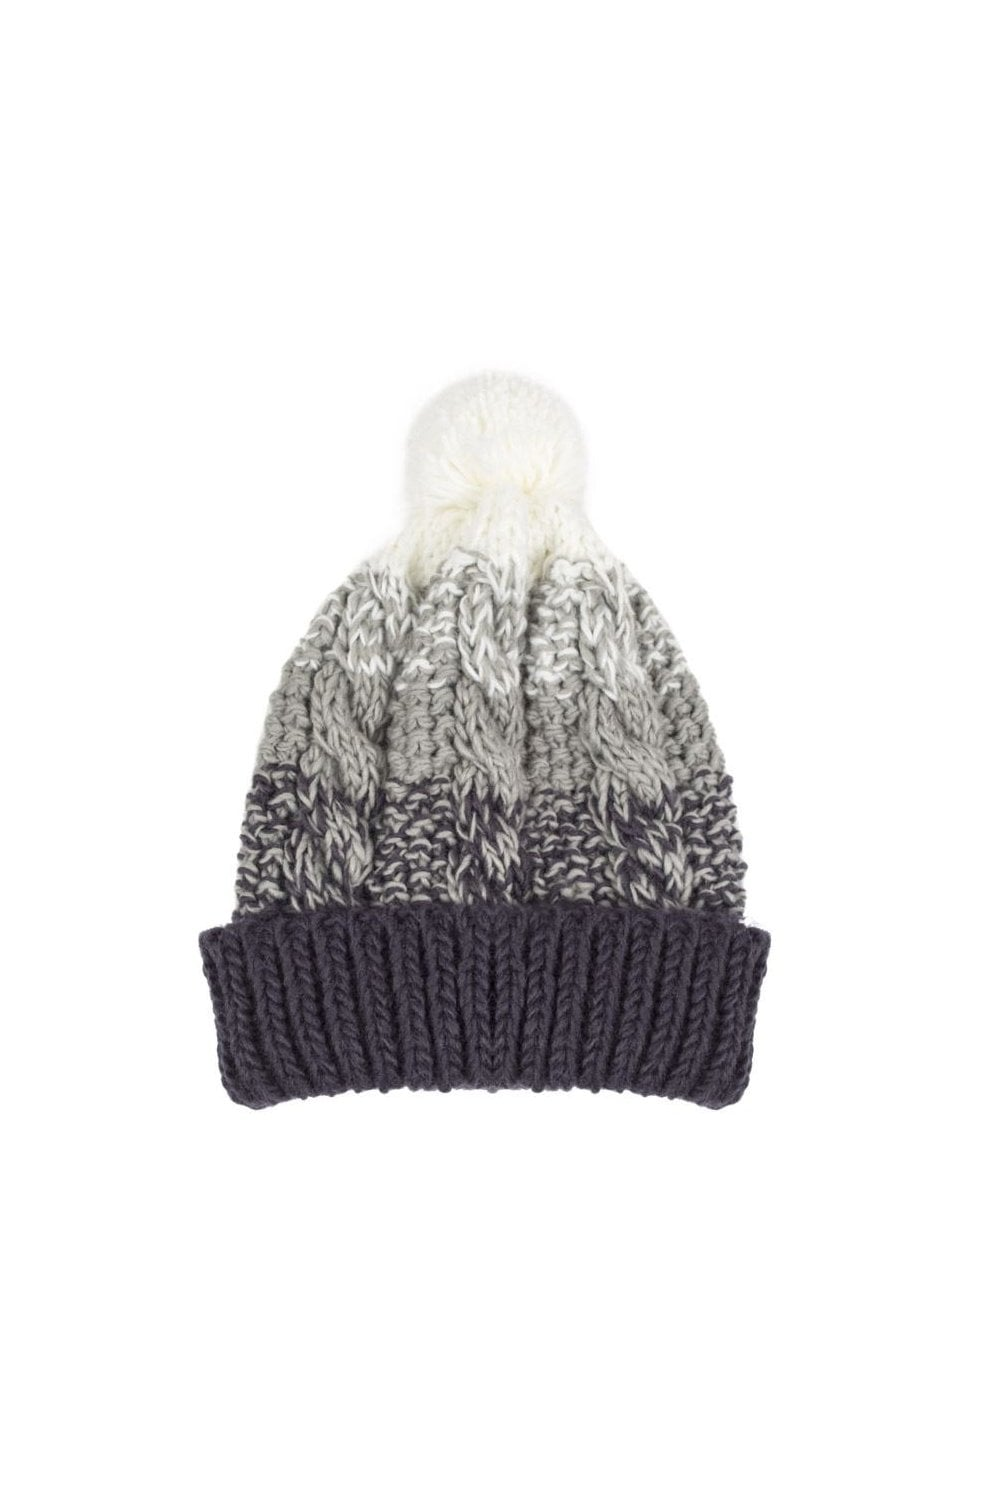 67e91a99bda0b4 Dents Womens Cable Knit Ombre Hat - Charcoal - Accessories from ...